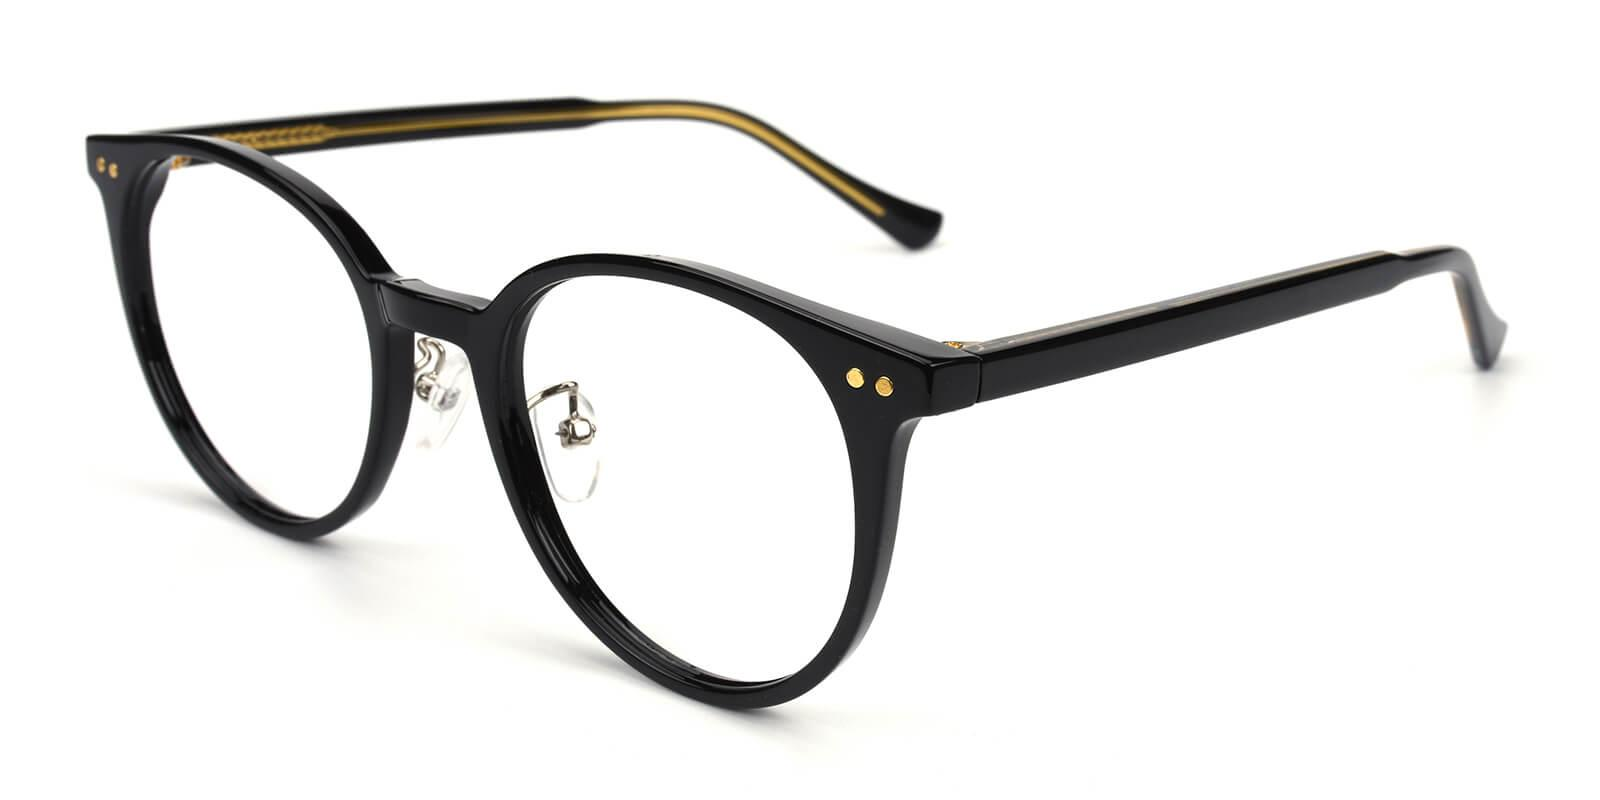 Freak-Black-Round-Acetate-Eyeglasses-detail